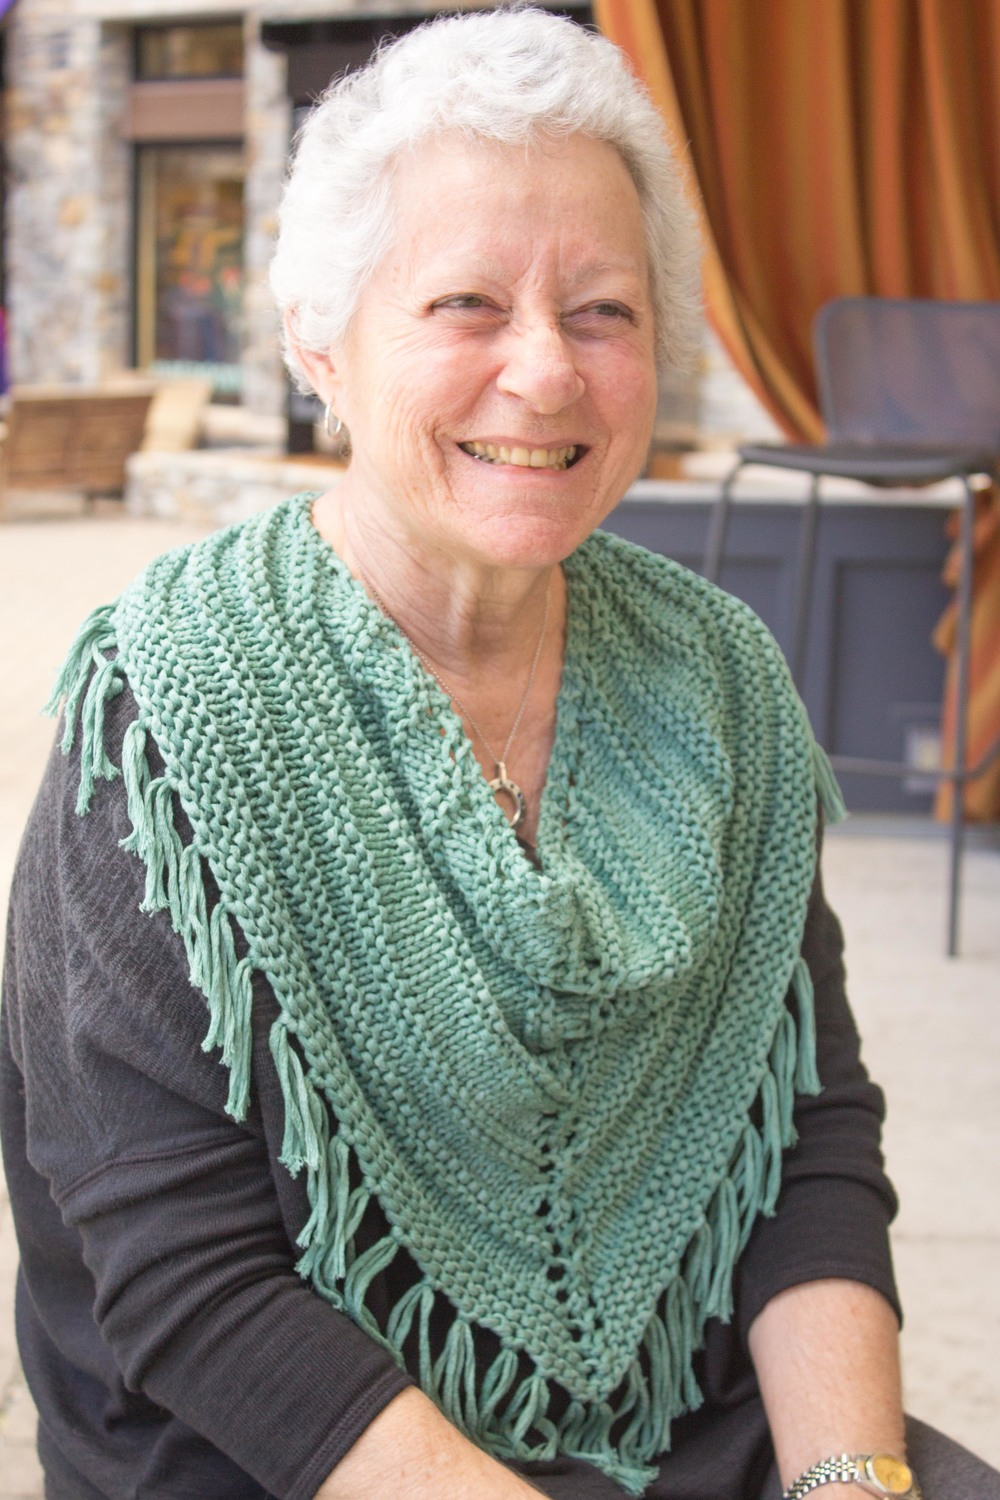 My green version in Berroco Karma modeled by the one and only amazing Sandy!